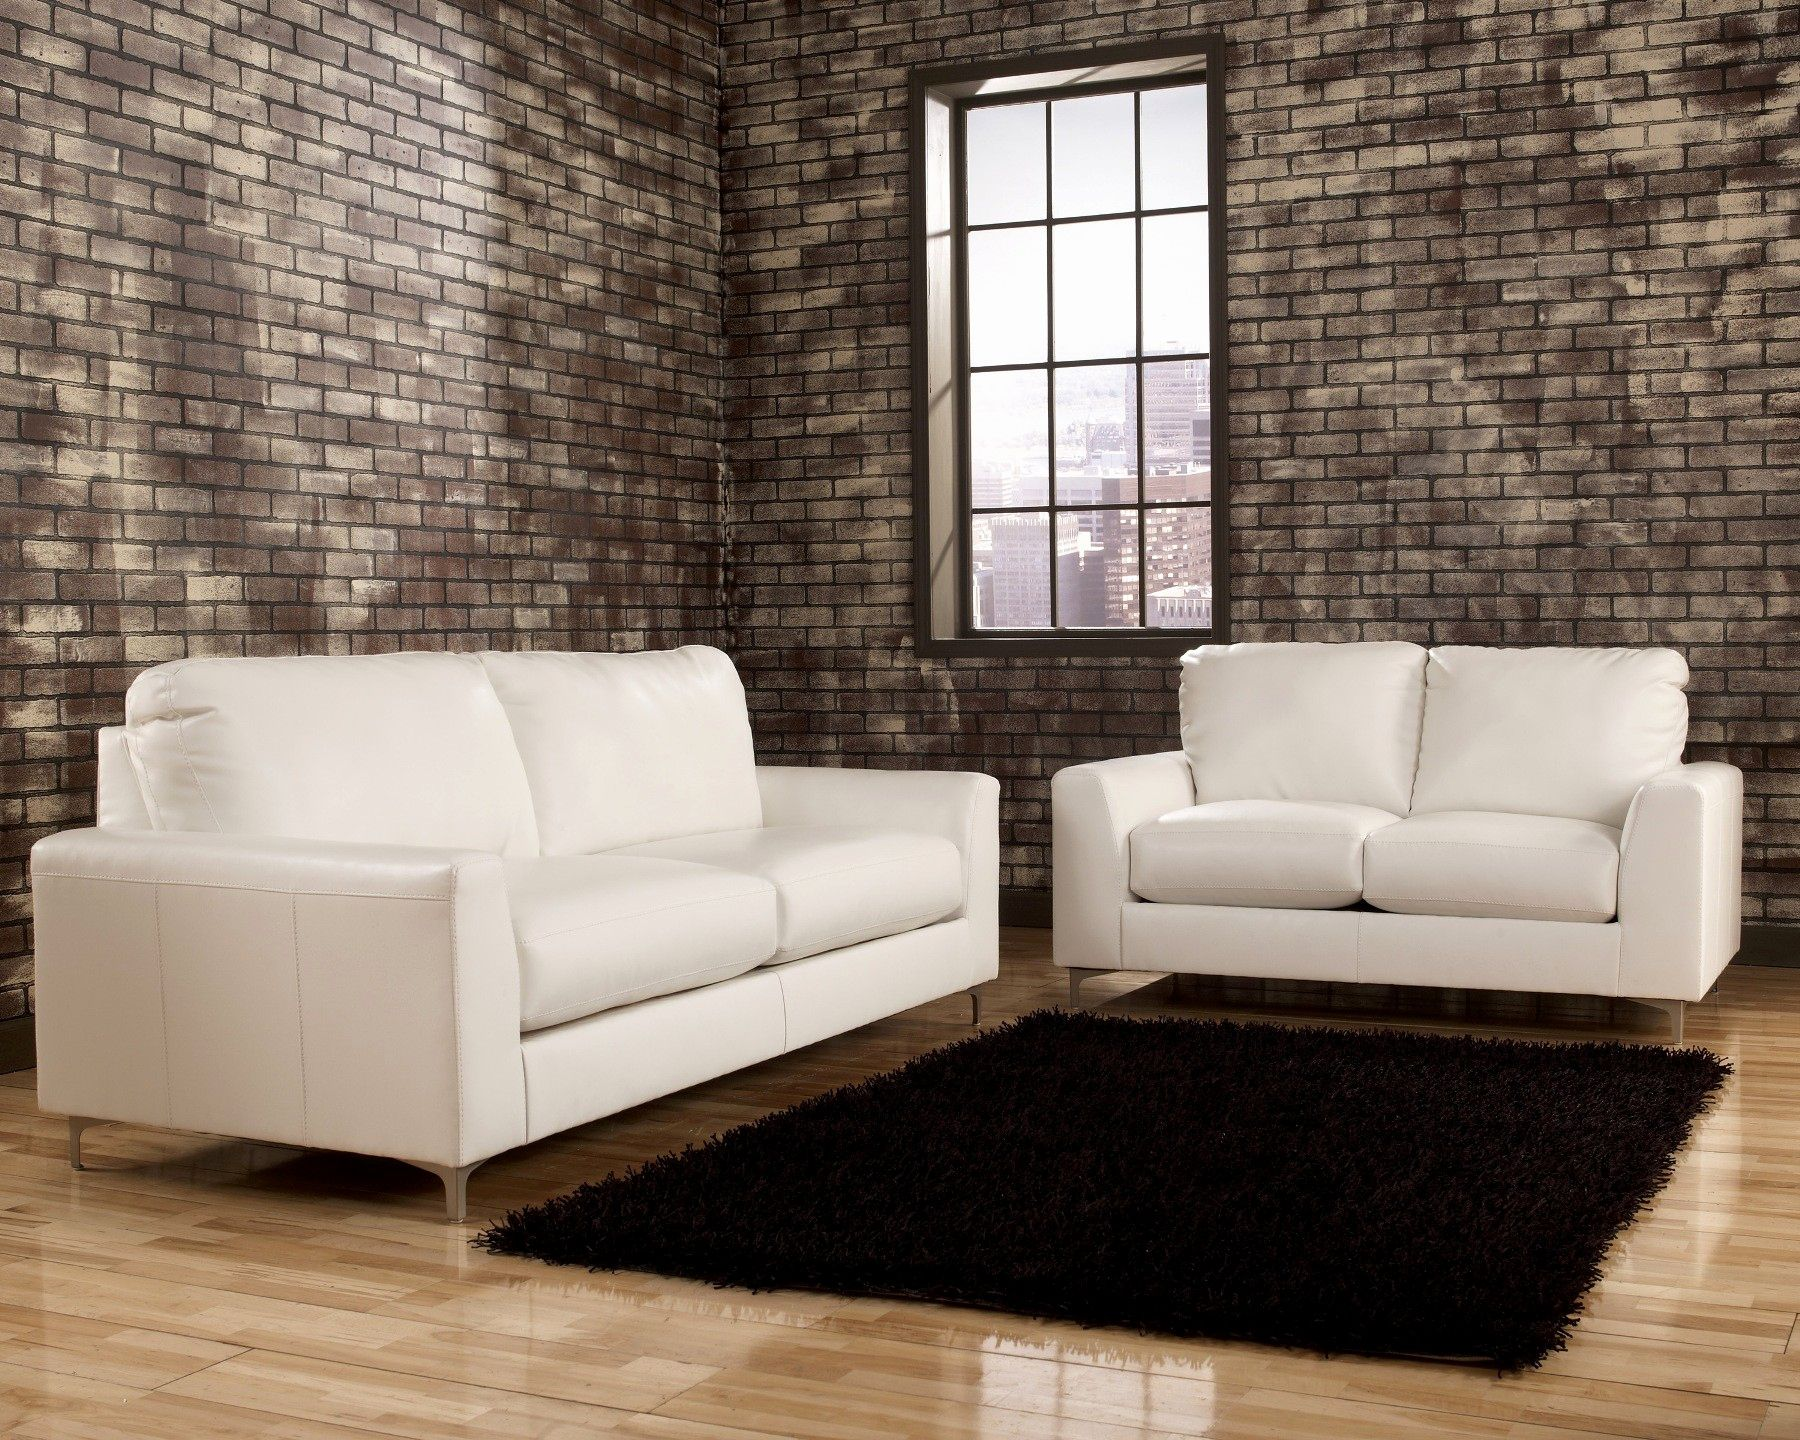 Best Of Ashley Furniture Modern Sofa Photographs Unique Dazzling Design Living Room Miami All Dining